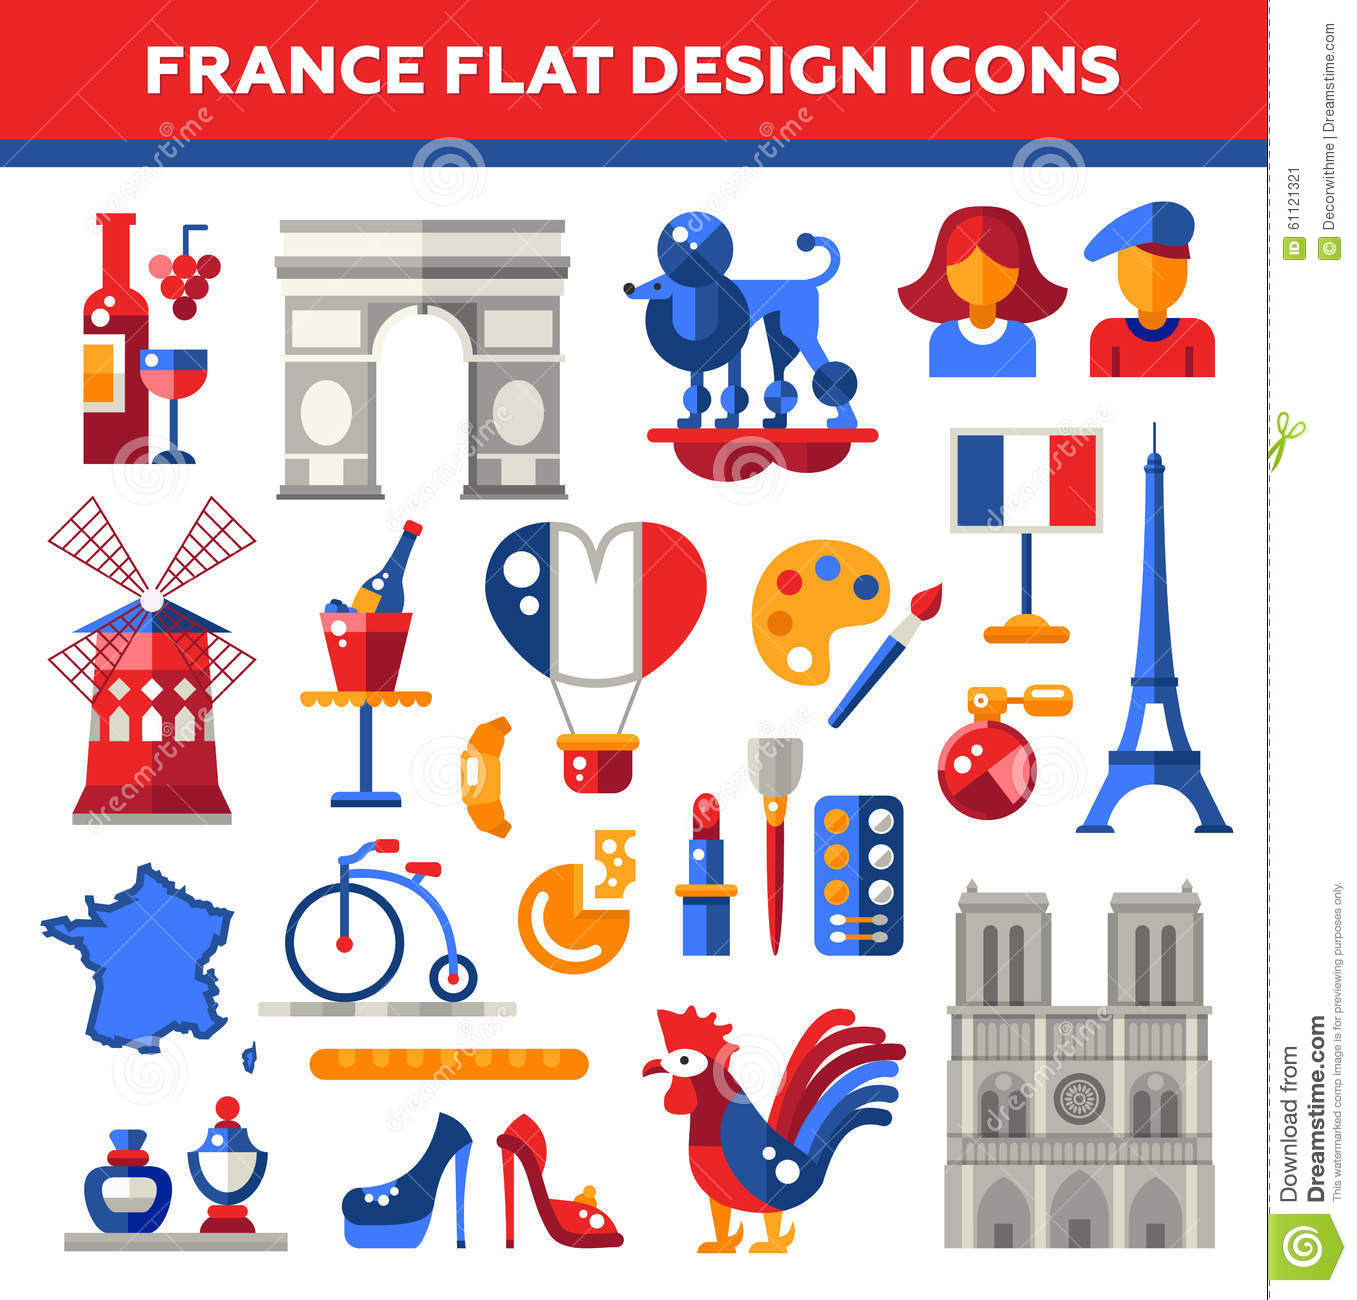 Design France Set Of Flat Design France Travel Icons Stock Vector